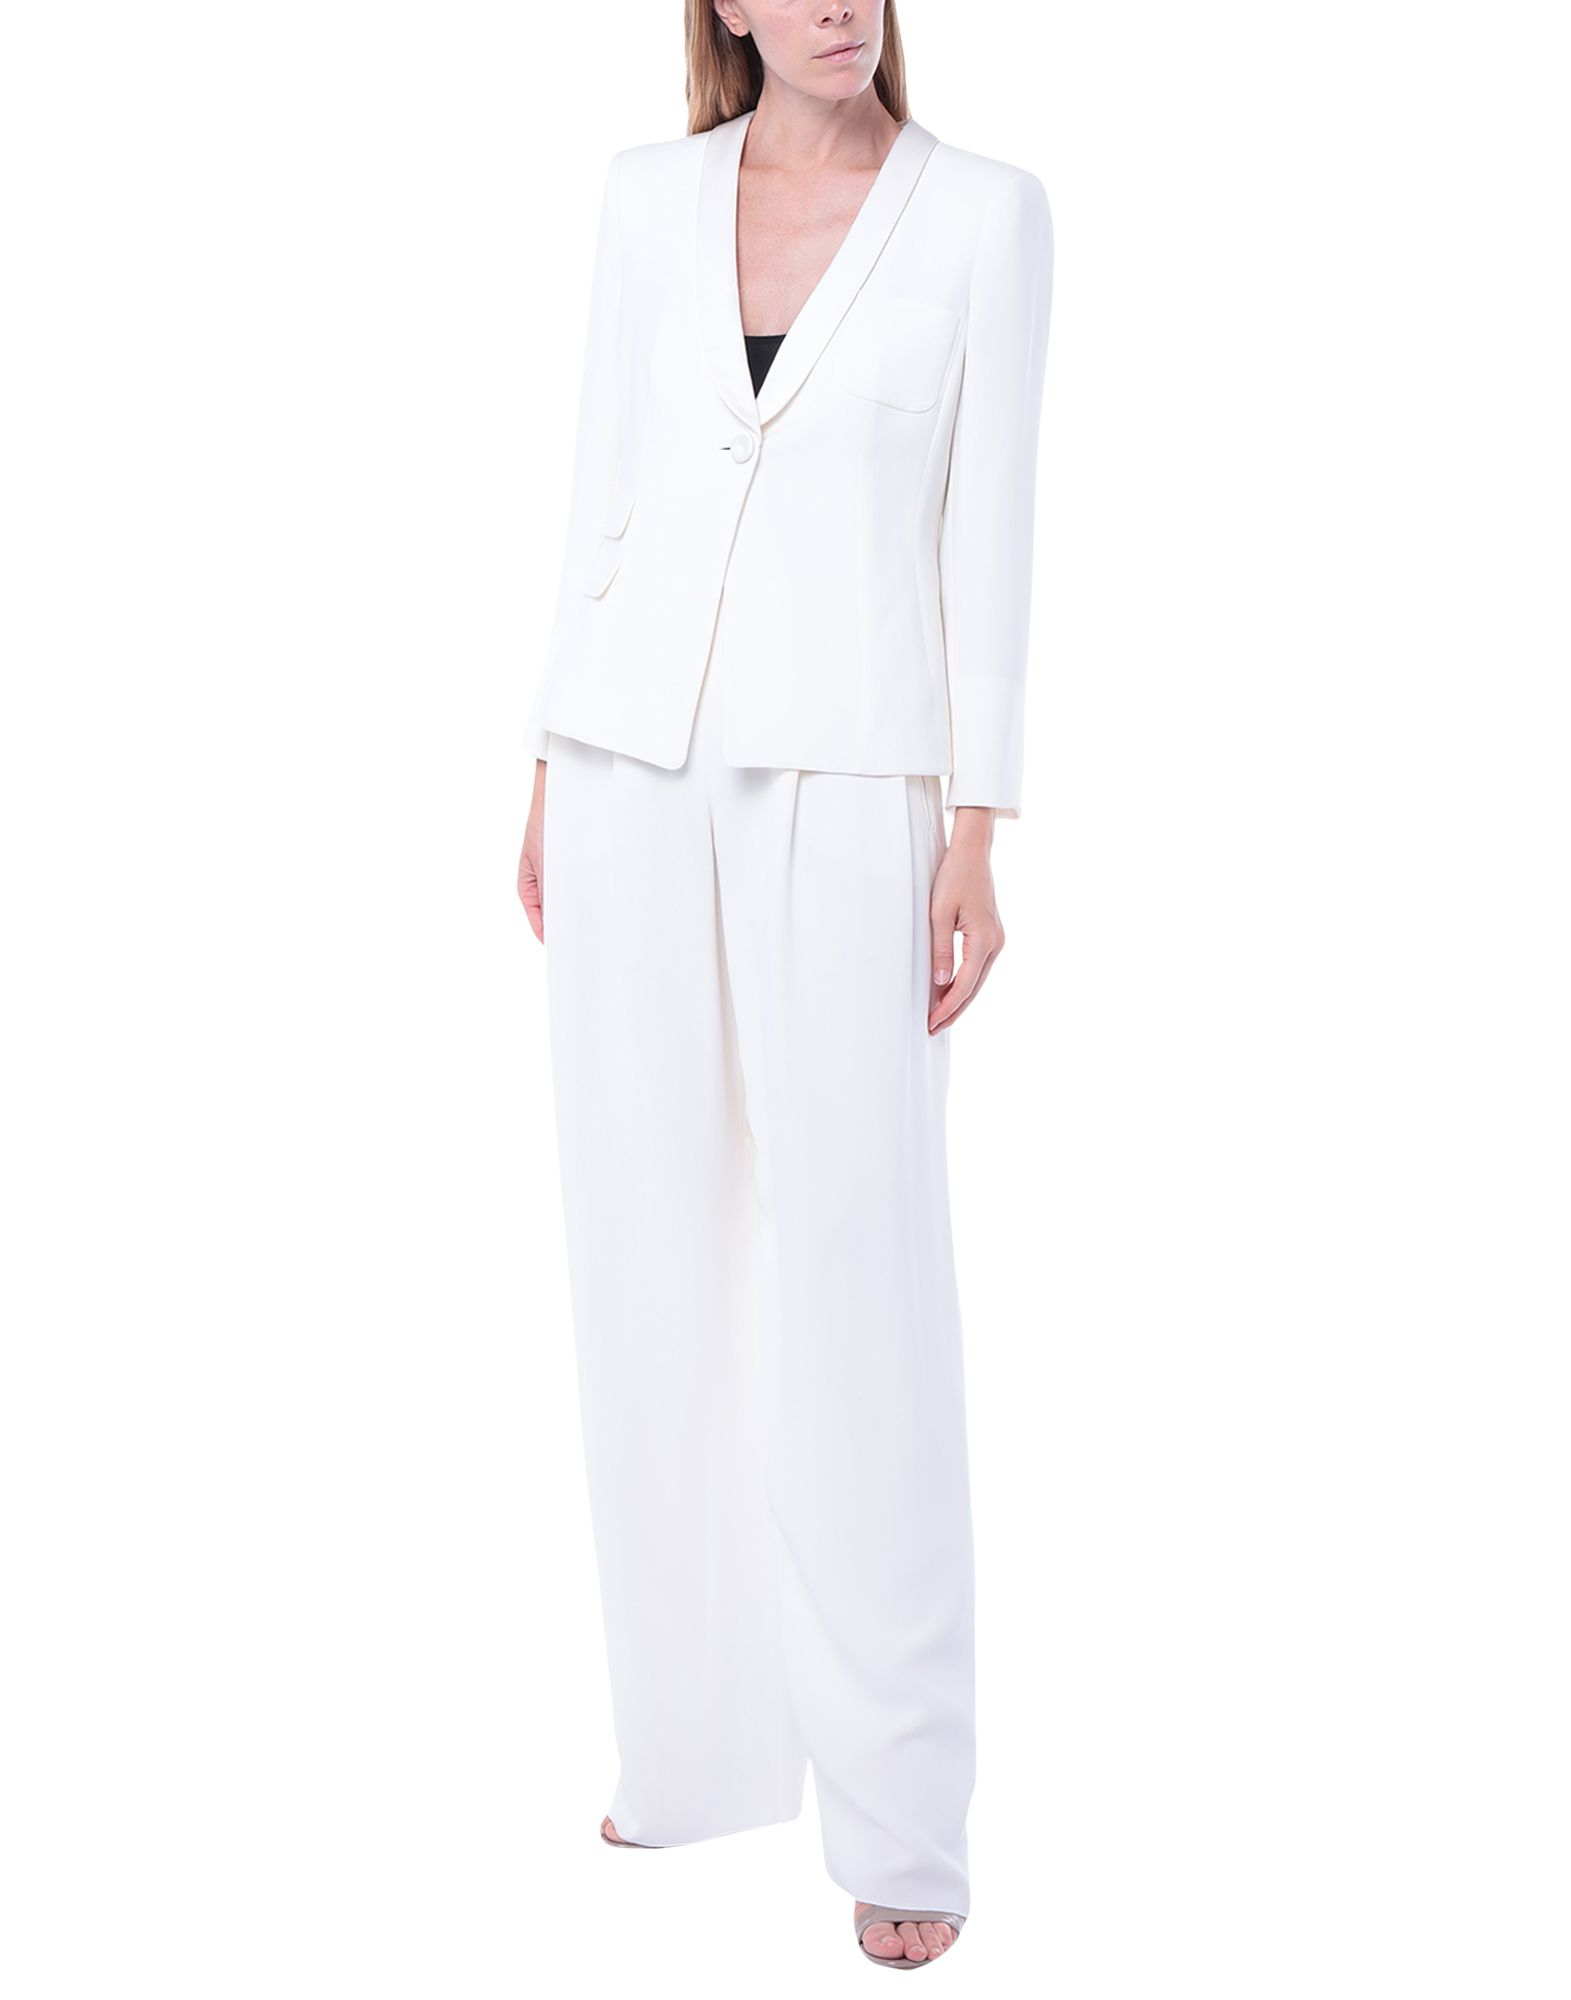 GIORGIO ARMANI Women\\\'s suits. crepe, no appliqués, basic solid color, multipockets, single chest pocket, button closing, lapel collar, single-breasted, long sleeves, fully lined, mid rise, zipper closure. 100% Silk